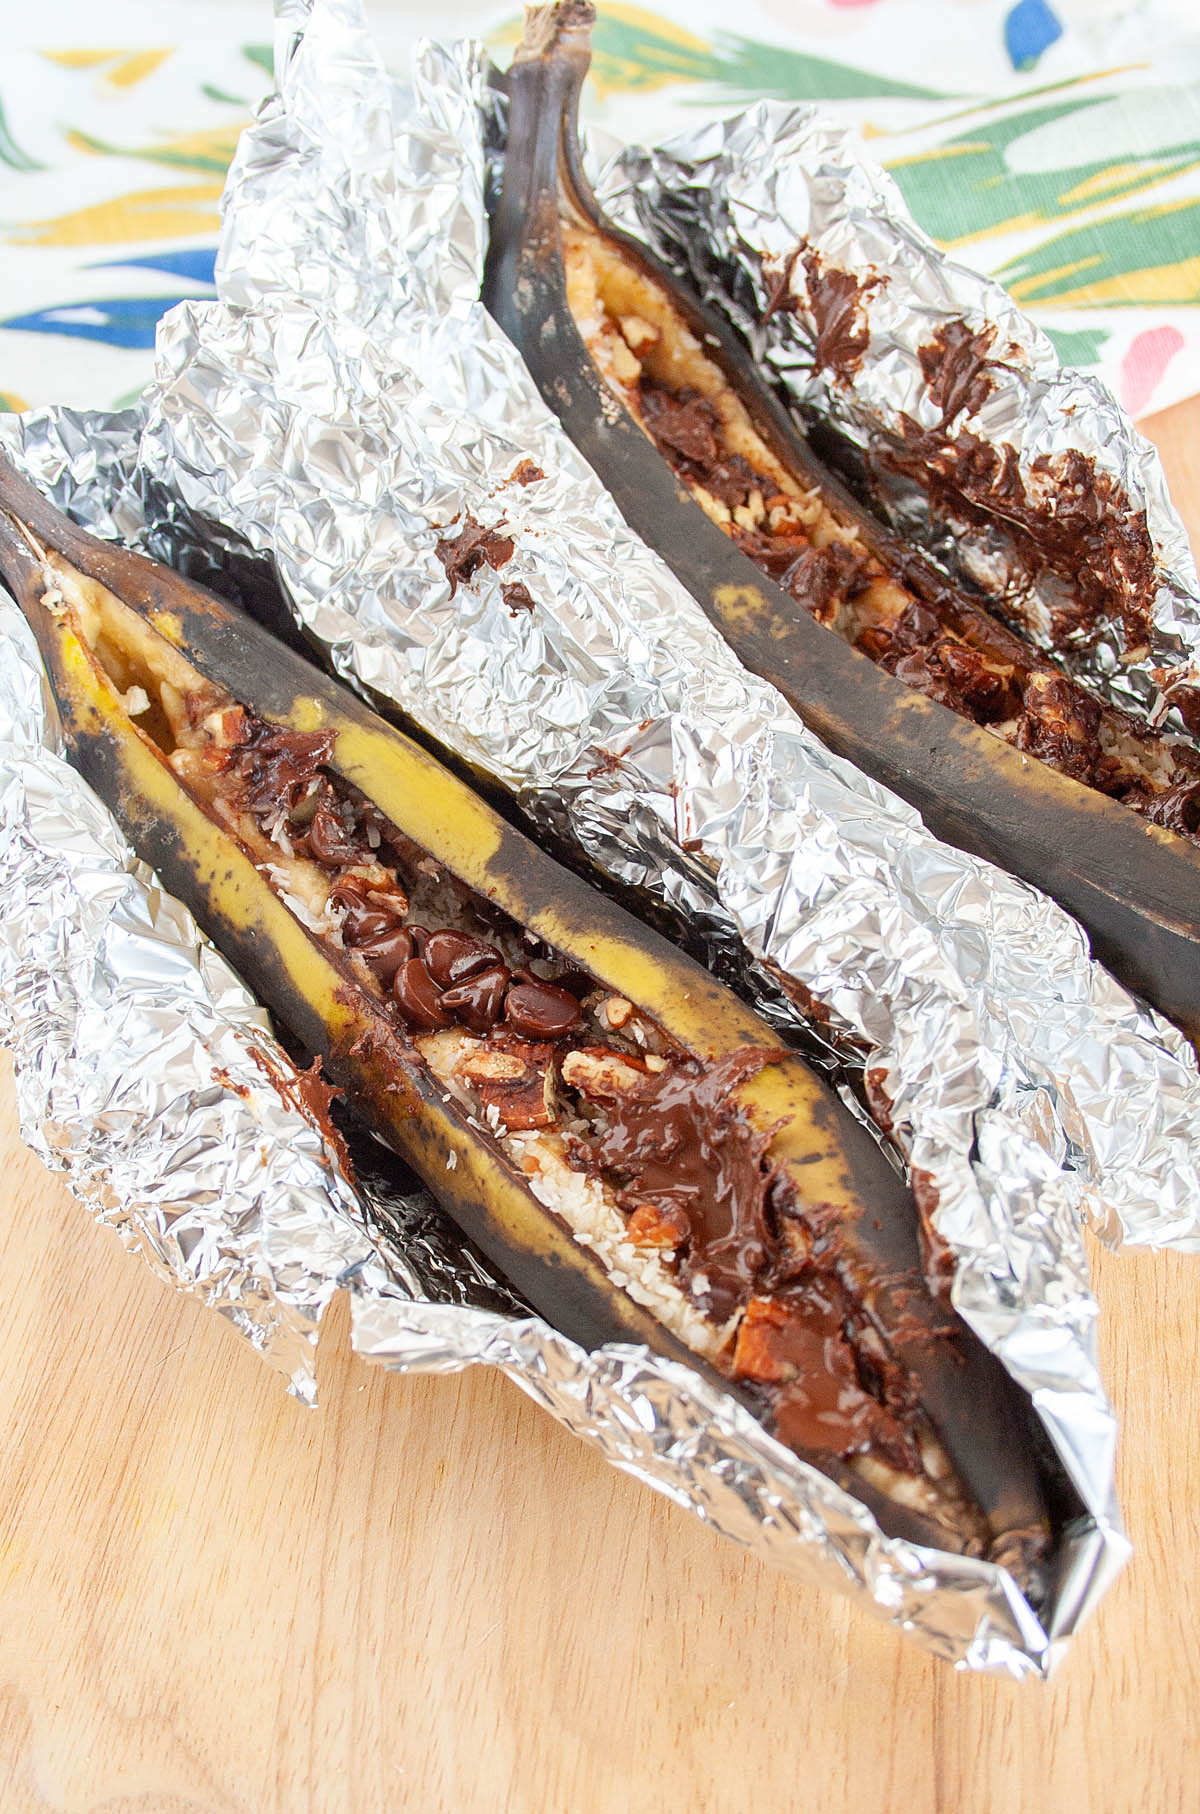 Campfire Stuffed Bananas in tinfoil on cutting board.